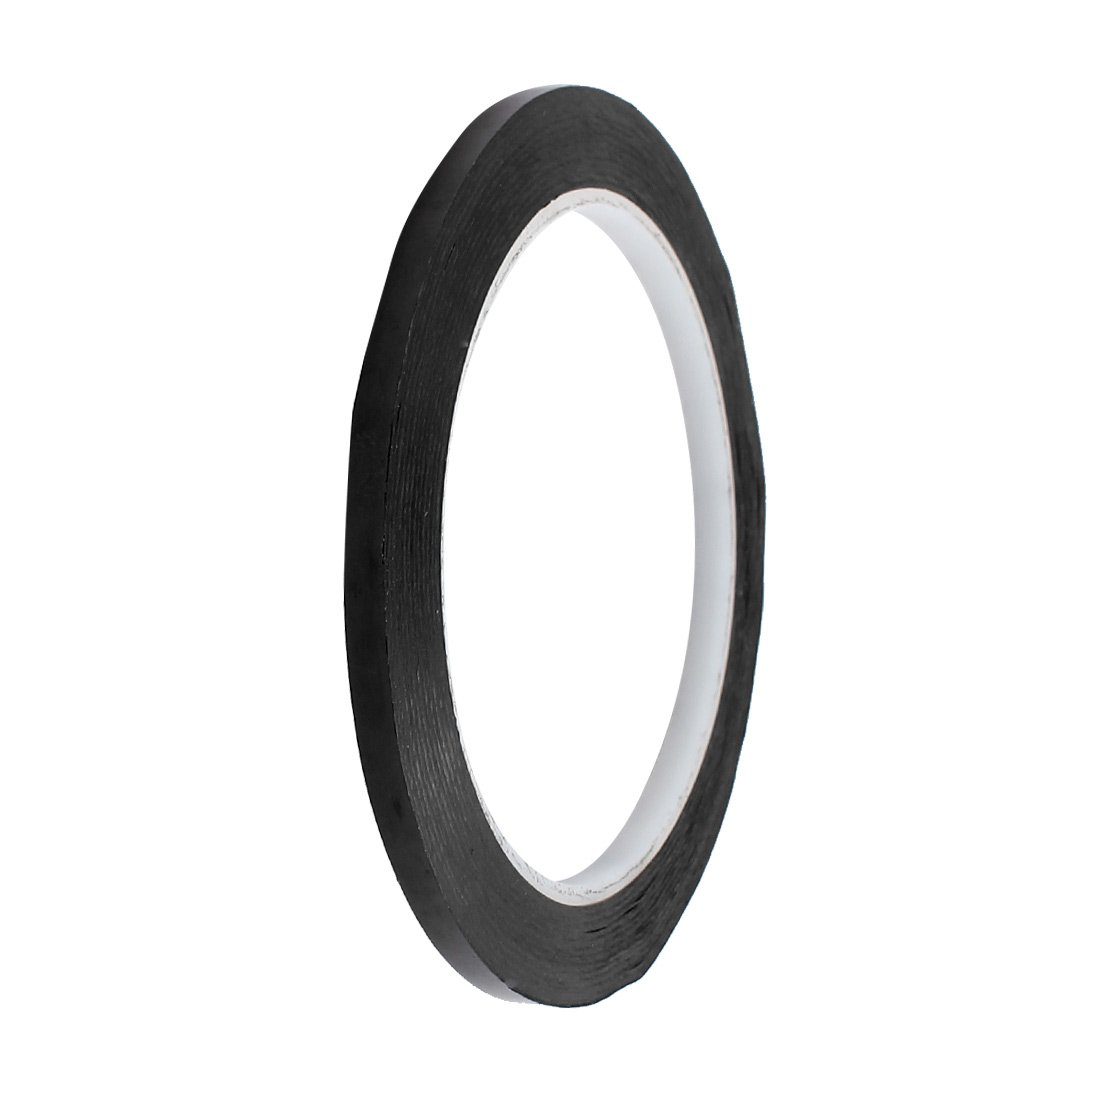 sourcingmap® 5mm x 66M Safety Caution Reflective Warning Sticker Adhesive Tape Black US-SA-AJD-364944